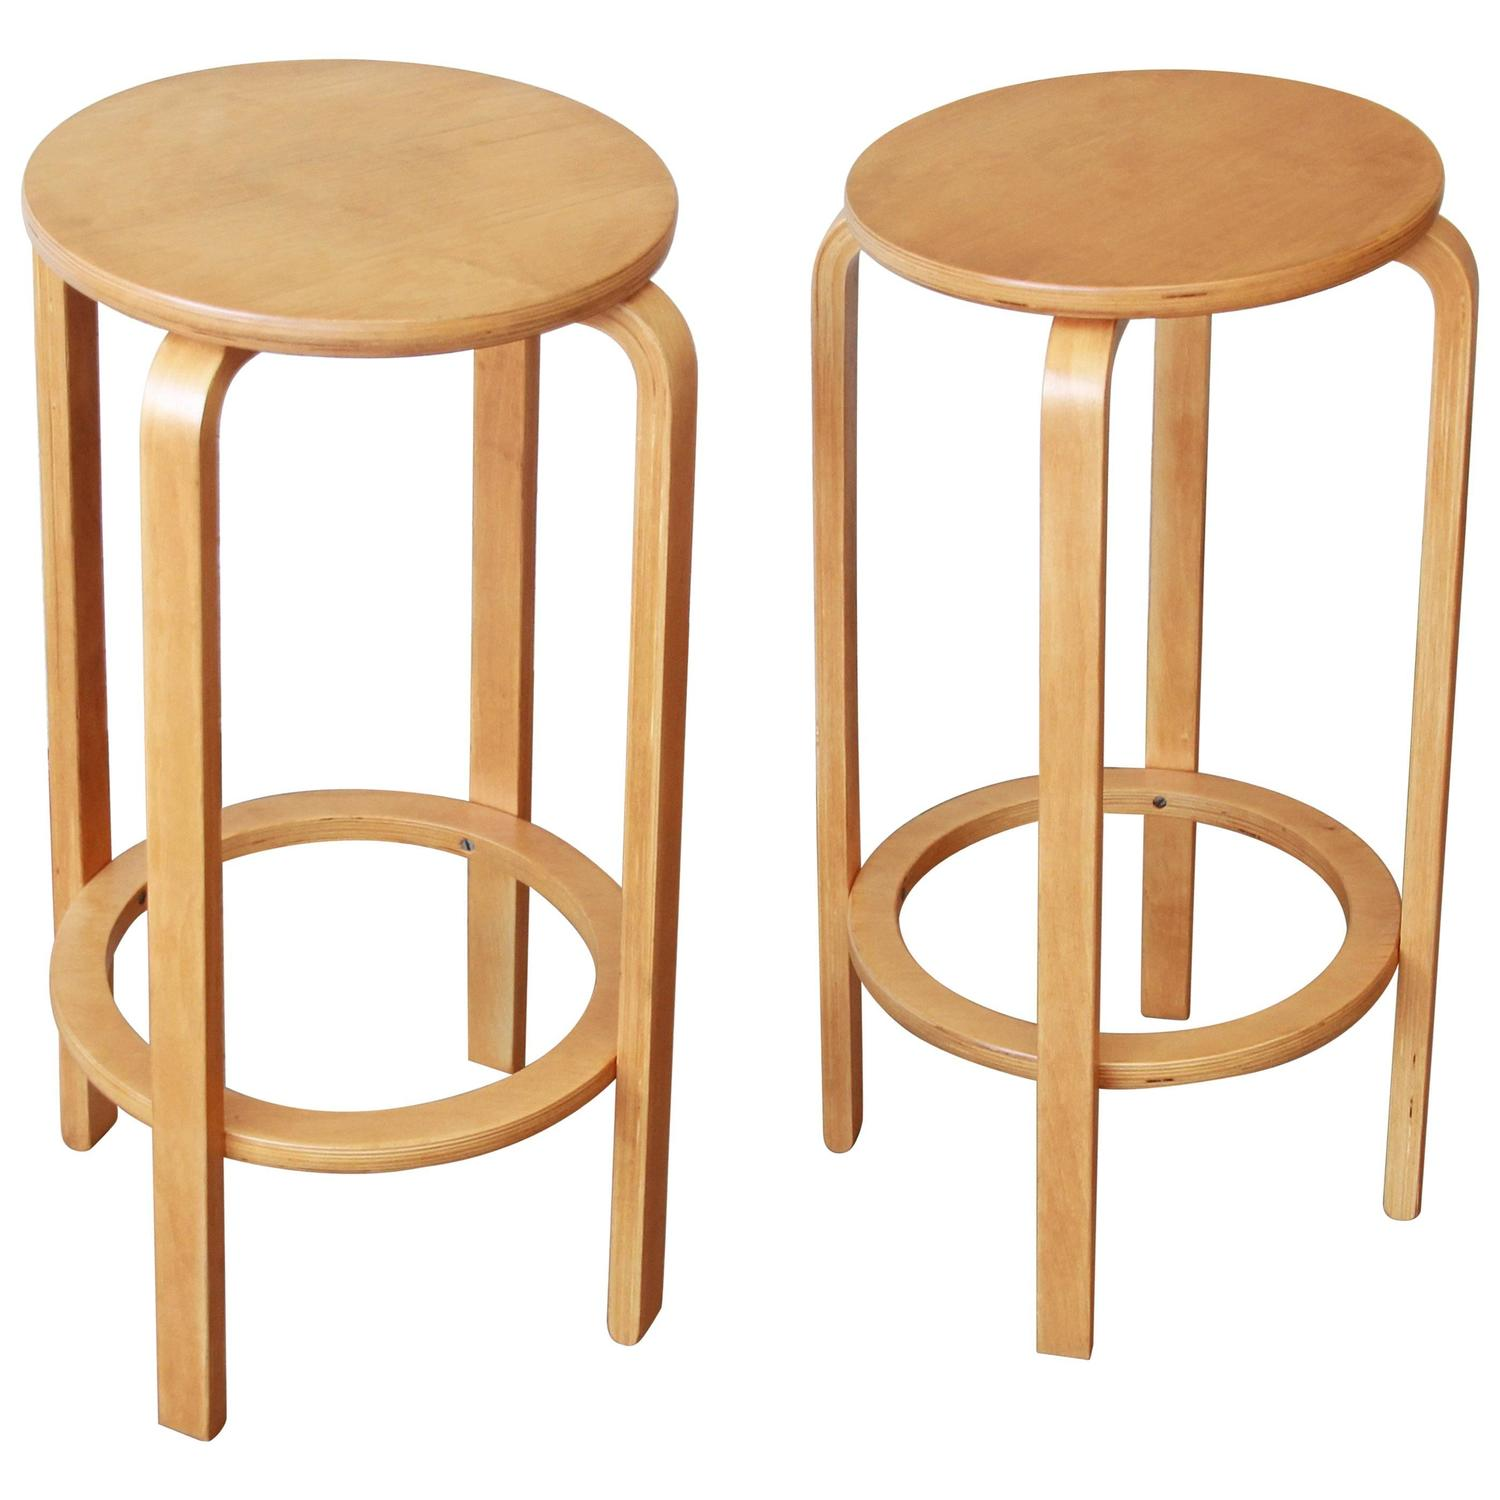 Bentwood Chairs 105 For Sale at 1stdibs